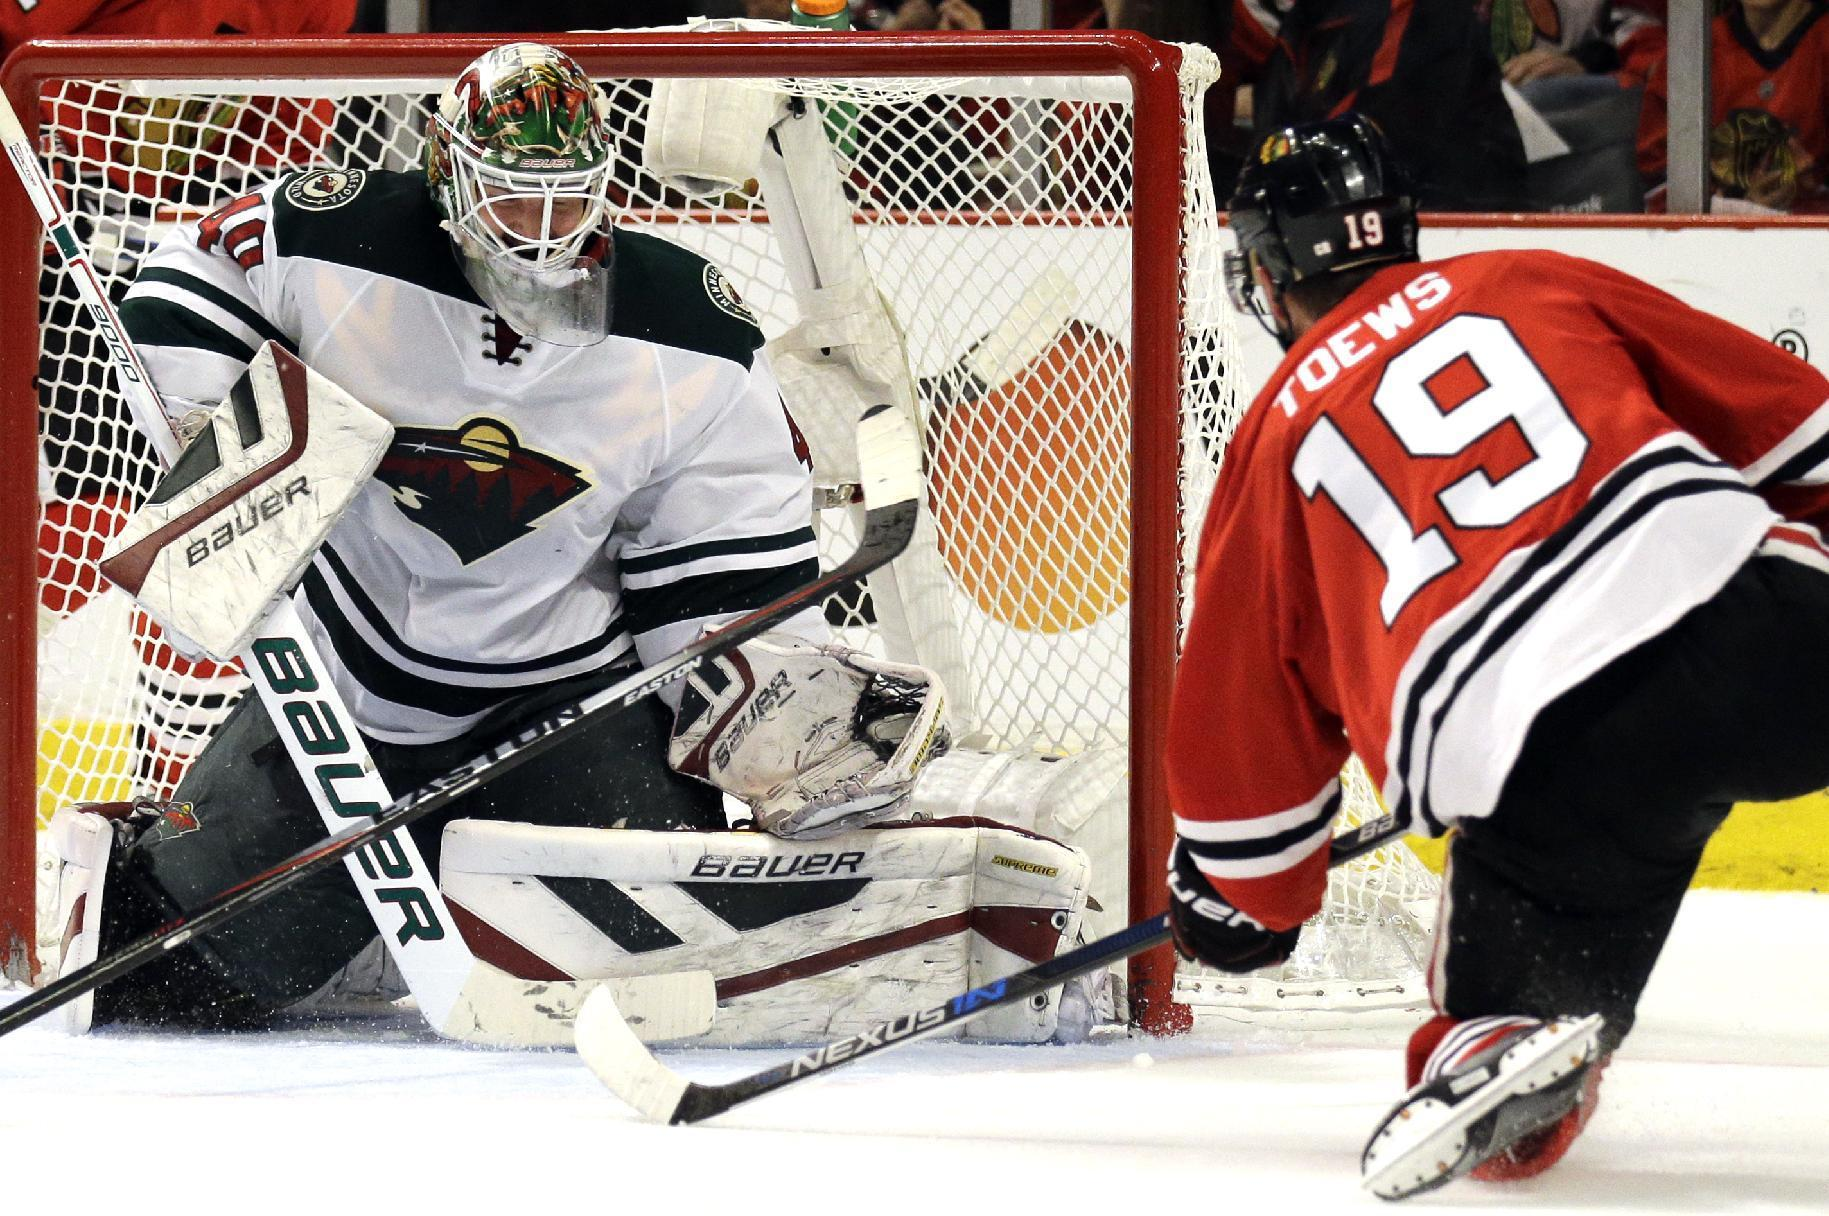 Usual suspects give Chicago a 2-0 series lead on Minnesota